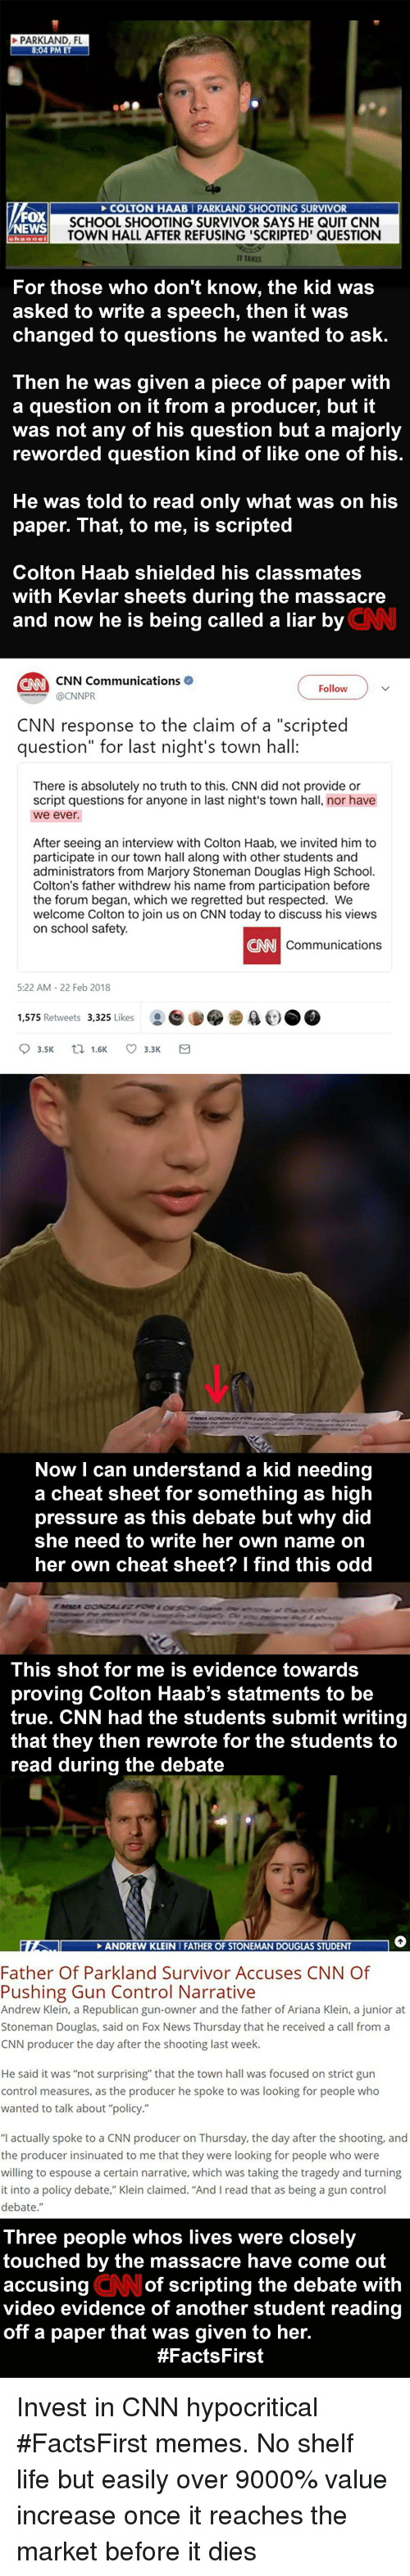 "cnn.com, Life, and Memes: N HAAB PARKLAND SHOOTING SURVIVOR  SCHOOL SHOOTING SURVIVOR SAYS HE QUIT CNN  TOWN HALL AFTER REFUSING 'SCRIPTED' QUESTION  WS  T TAKES  For those who don't know, the kid was  asked to write a speech, then it was  changed to questions he wanted to ask.  Then he was given a piece of paper with  a question on it from a producer, but it  was not any of his question but a majorly  reworded question kind of like one of his  He was told to read only what was on his  paper. That, to me, is scripted  Colton Haab shielded his classmates  with Kevlar sheets during the massacre  and now he is being called a liar by  CNN  Follow  OCNNPR  CNN response to the claim of a ""scripted  question"" for last night's town hall  There is absolutely no truth to this. CNN did not provide or  script questions for anyone in last night's town hall, nor have  we ever.  After seeing an interview with Colton Haab, we invited him to  participate in our town hall along with other students and  administrators from Marjory Stoneman Douglas High School.  Colton's father withdrew his name from participation before  the forum began, which we regretted but respected. We  welcome Colton to join us on CNN today to discuss his views  on school safety.  CNN  Communications  522 AM-22 Feb 2018  1,575 Retweets 3,325 Likes  t.)  Now I can understand a kid needing  a cheat sheet for something as high  pressure as this debate but why did  she need to write her own name on  her own cheat sheet? I find this odd  This shot for me is evidence towards  proving Colton Haab's statments to be  true. CNN had the students submit writing  that they then rewrote for the students to  be  they then tehe students  read during the debate  to  NDREW KLEI  Father Of Parkland Survivor Accuses CNN Of  Pushing Gun Control Narrative  Andrew Klein, a Republican gun-owner and the father of Ariana Klein, a junior at  Stoneman Douglas, said on Fox News Thursday that he received a call from a  CNN producer the day after the shooting last week.  He said it was ""not surprising that the town hall was focused on strict gun  control measures, as the producer he spoke to was looking for people who  wanted to talk about policy.""  ""l actually spoke to a CNN producer on Thursday, the day after the shooting, and  the producer insinuated to me that they were looking for people who were  willing to espouse a certain narrative, which was taking the tragedy and turning  it into a policy debate.""Klein claimed. ""And I read that as being a gun control  debate.""  Three people whos lives were closely  touched by the massacre have come out  CN  of scripting the debate with  accusing  video evidence of another student reading  off a paper that was given to her  to her"